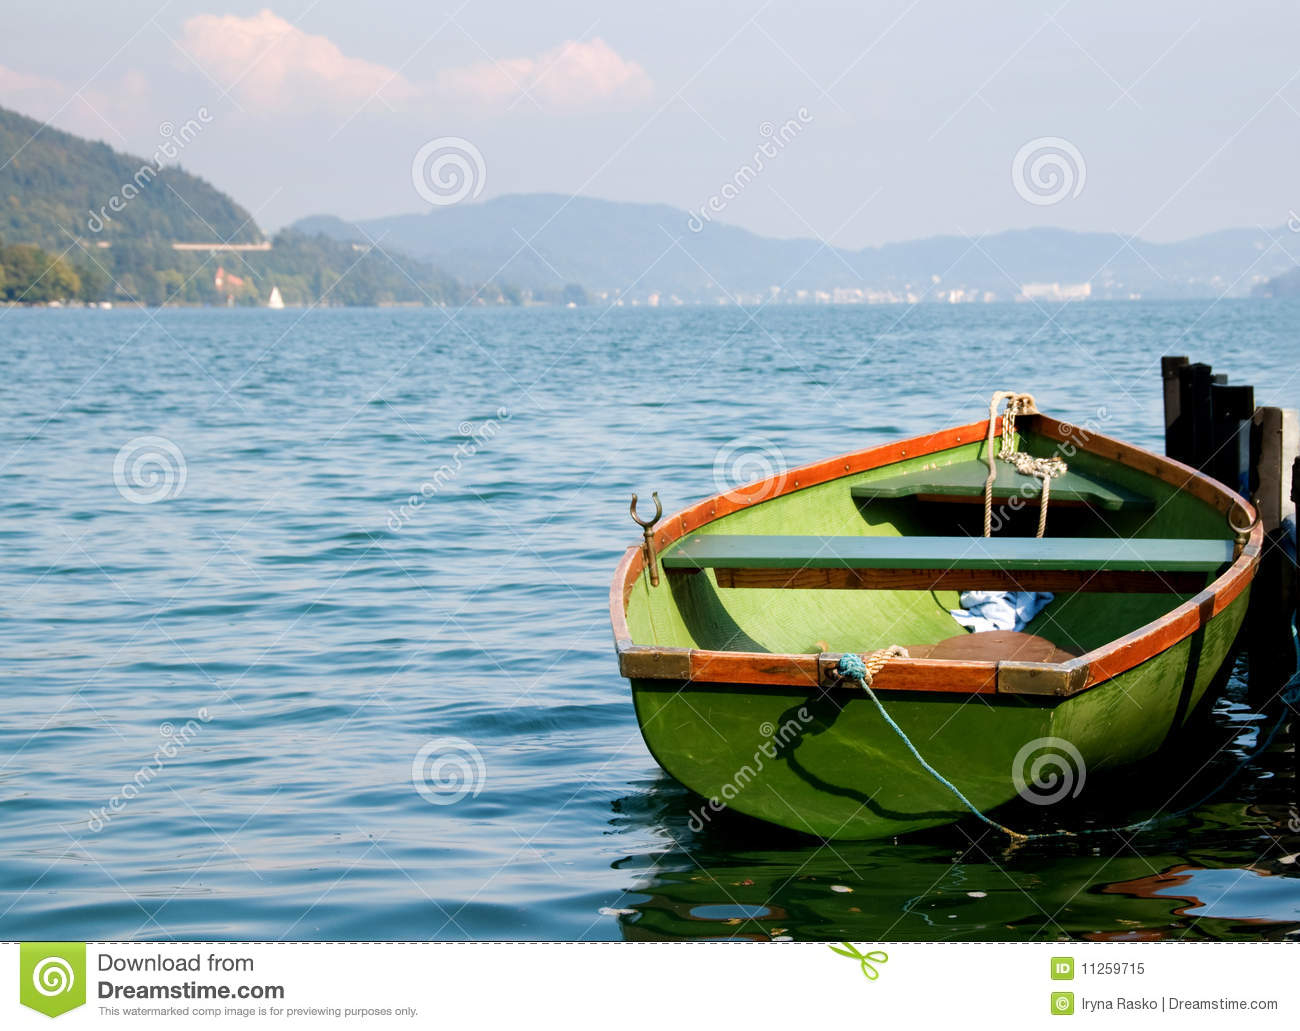 Green Boat On Water With Mountains On Background Royalty Free Stock Photo - Image: 11259715